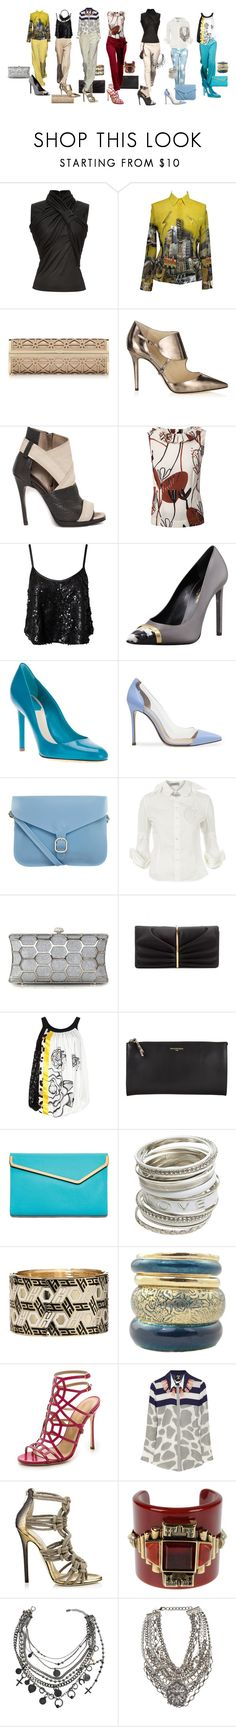 """""""I love pants"""" by gorica-stojilkovic ❤ liked on Polyvore featuring Jason Wu, byblos, House of Holland, Bouchra Jarrar, Versace, Jimmy Choo, McQ by Alexander McQueen, Marni, Oneness and Yves Saint Laurent"""